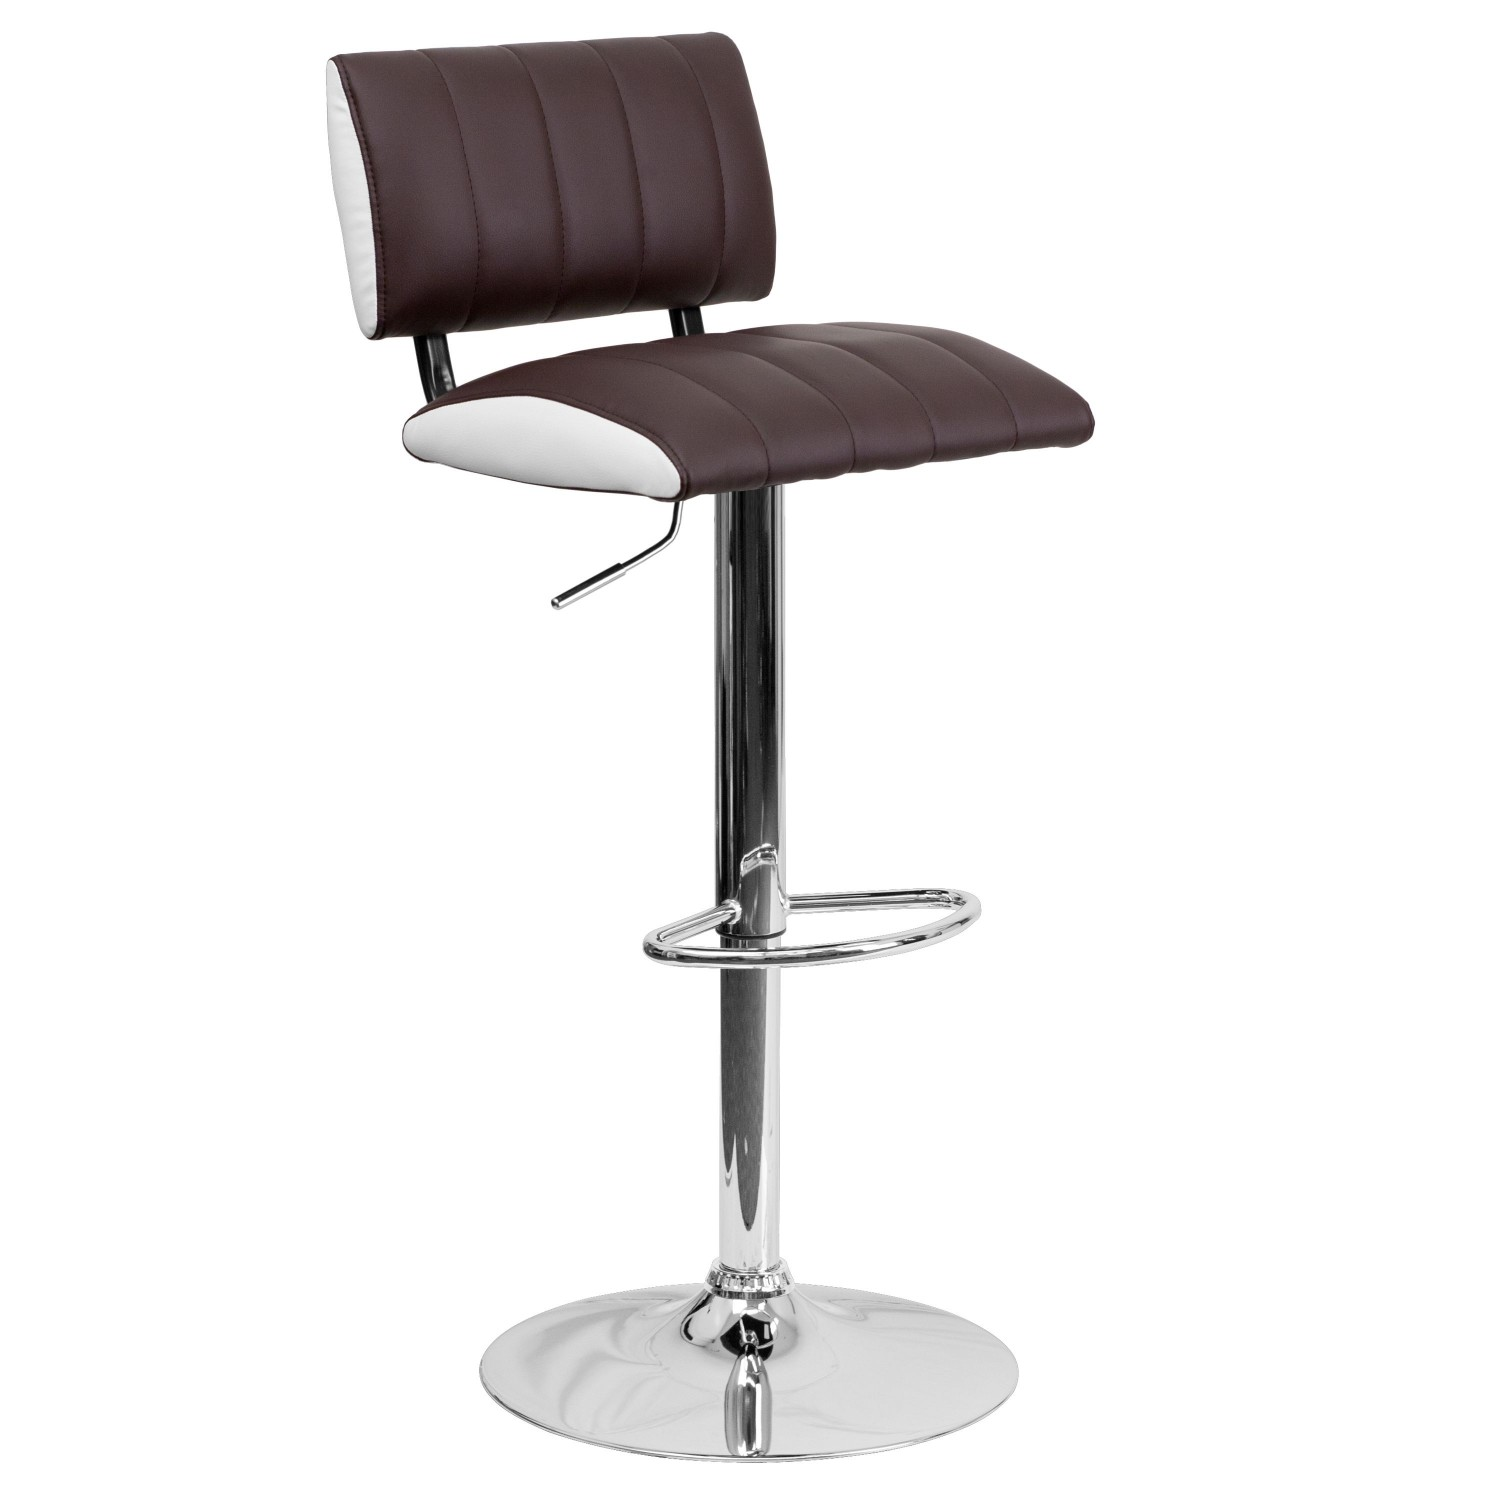 Flash Furniture CH-122150-BRN-GG Contemporary Two Tone Brown and White Vinyl Adjustable Height Bar Stool